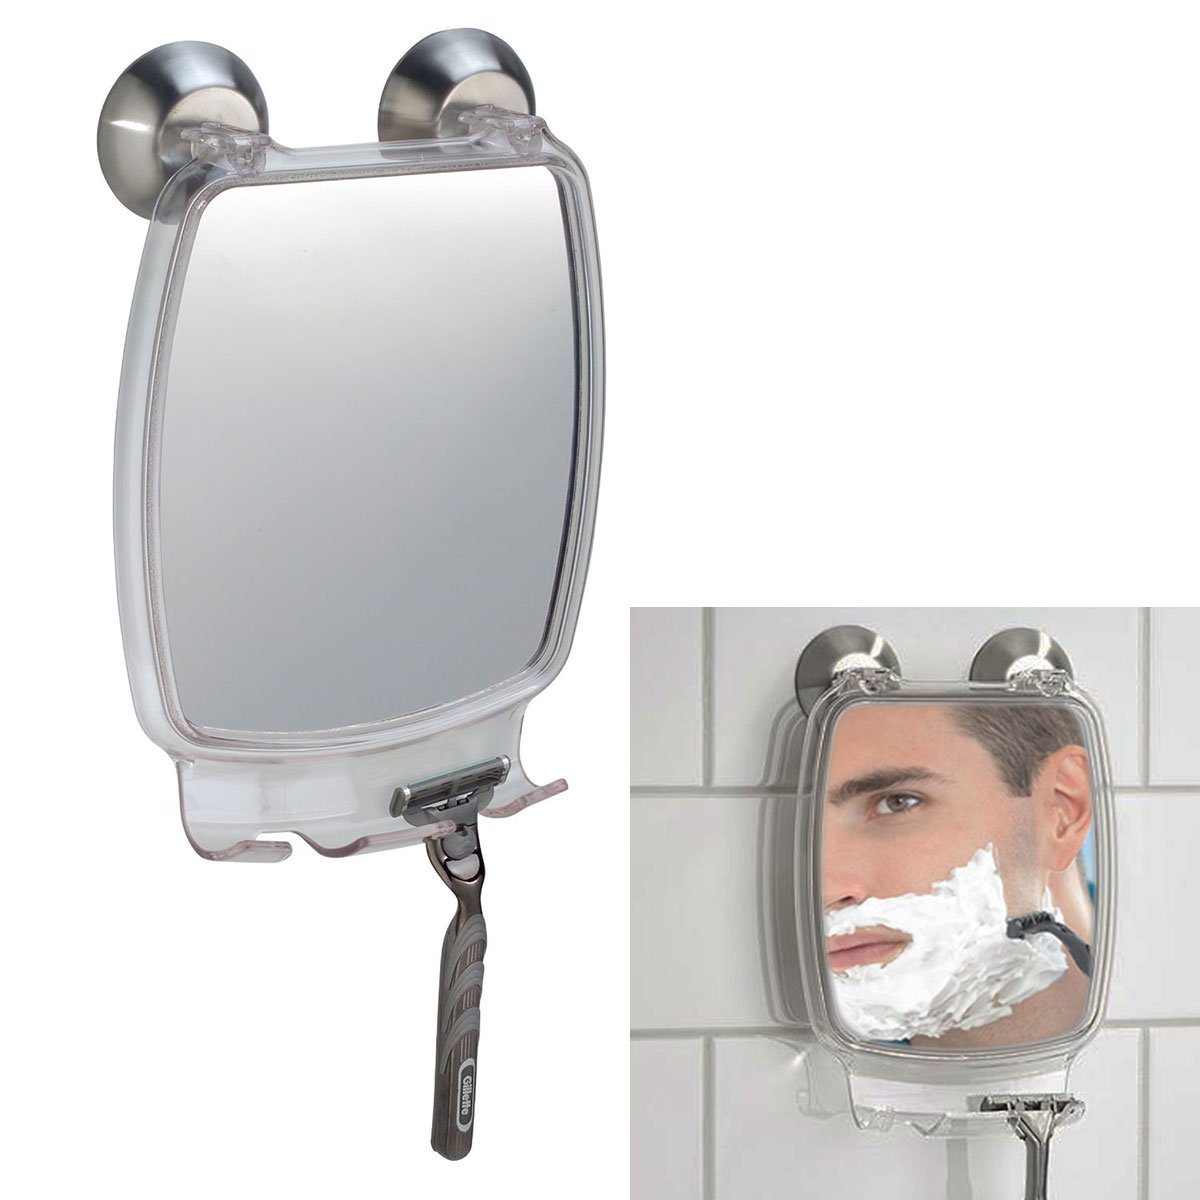 With Power Suction Cup Mount Fog Free Shower Shaving Rectangular Mirror